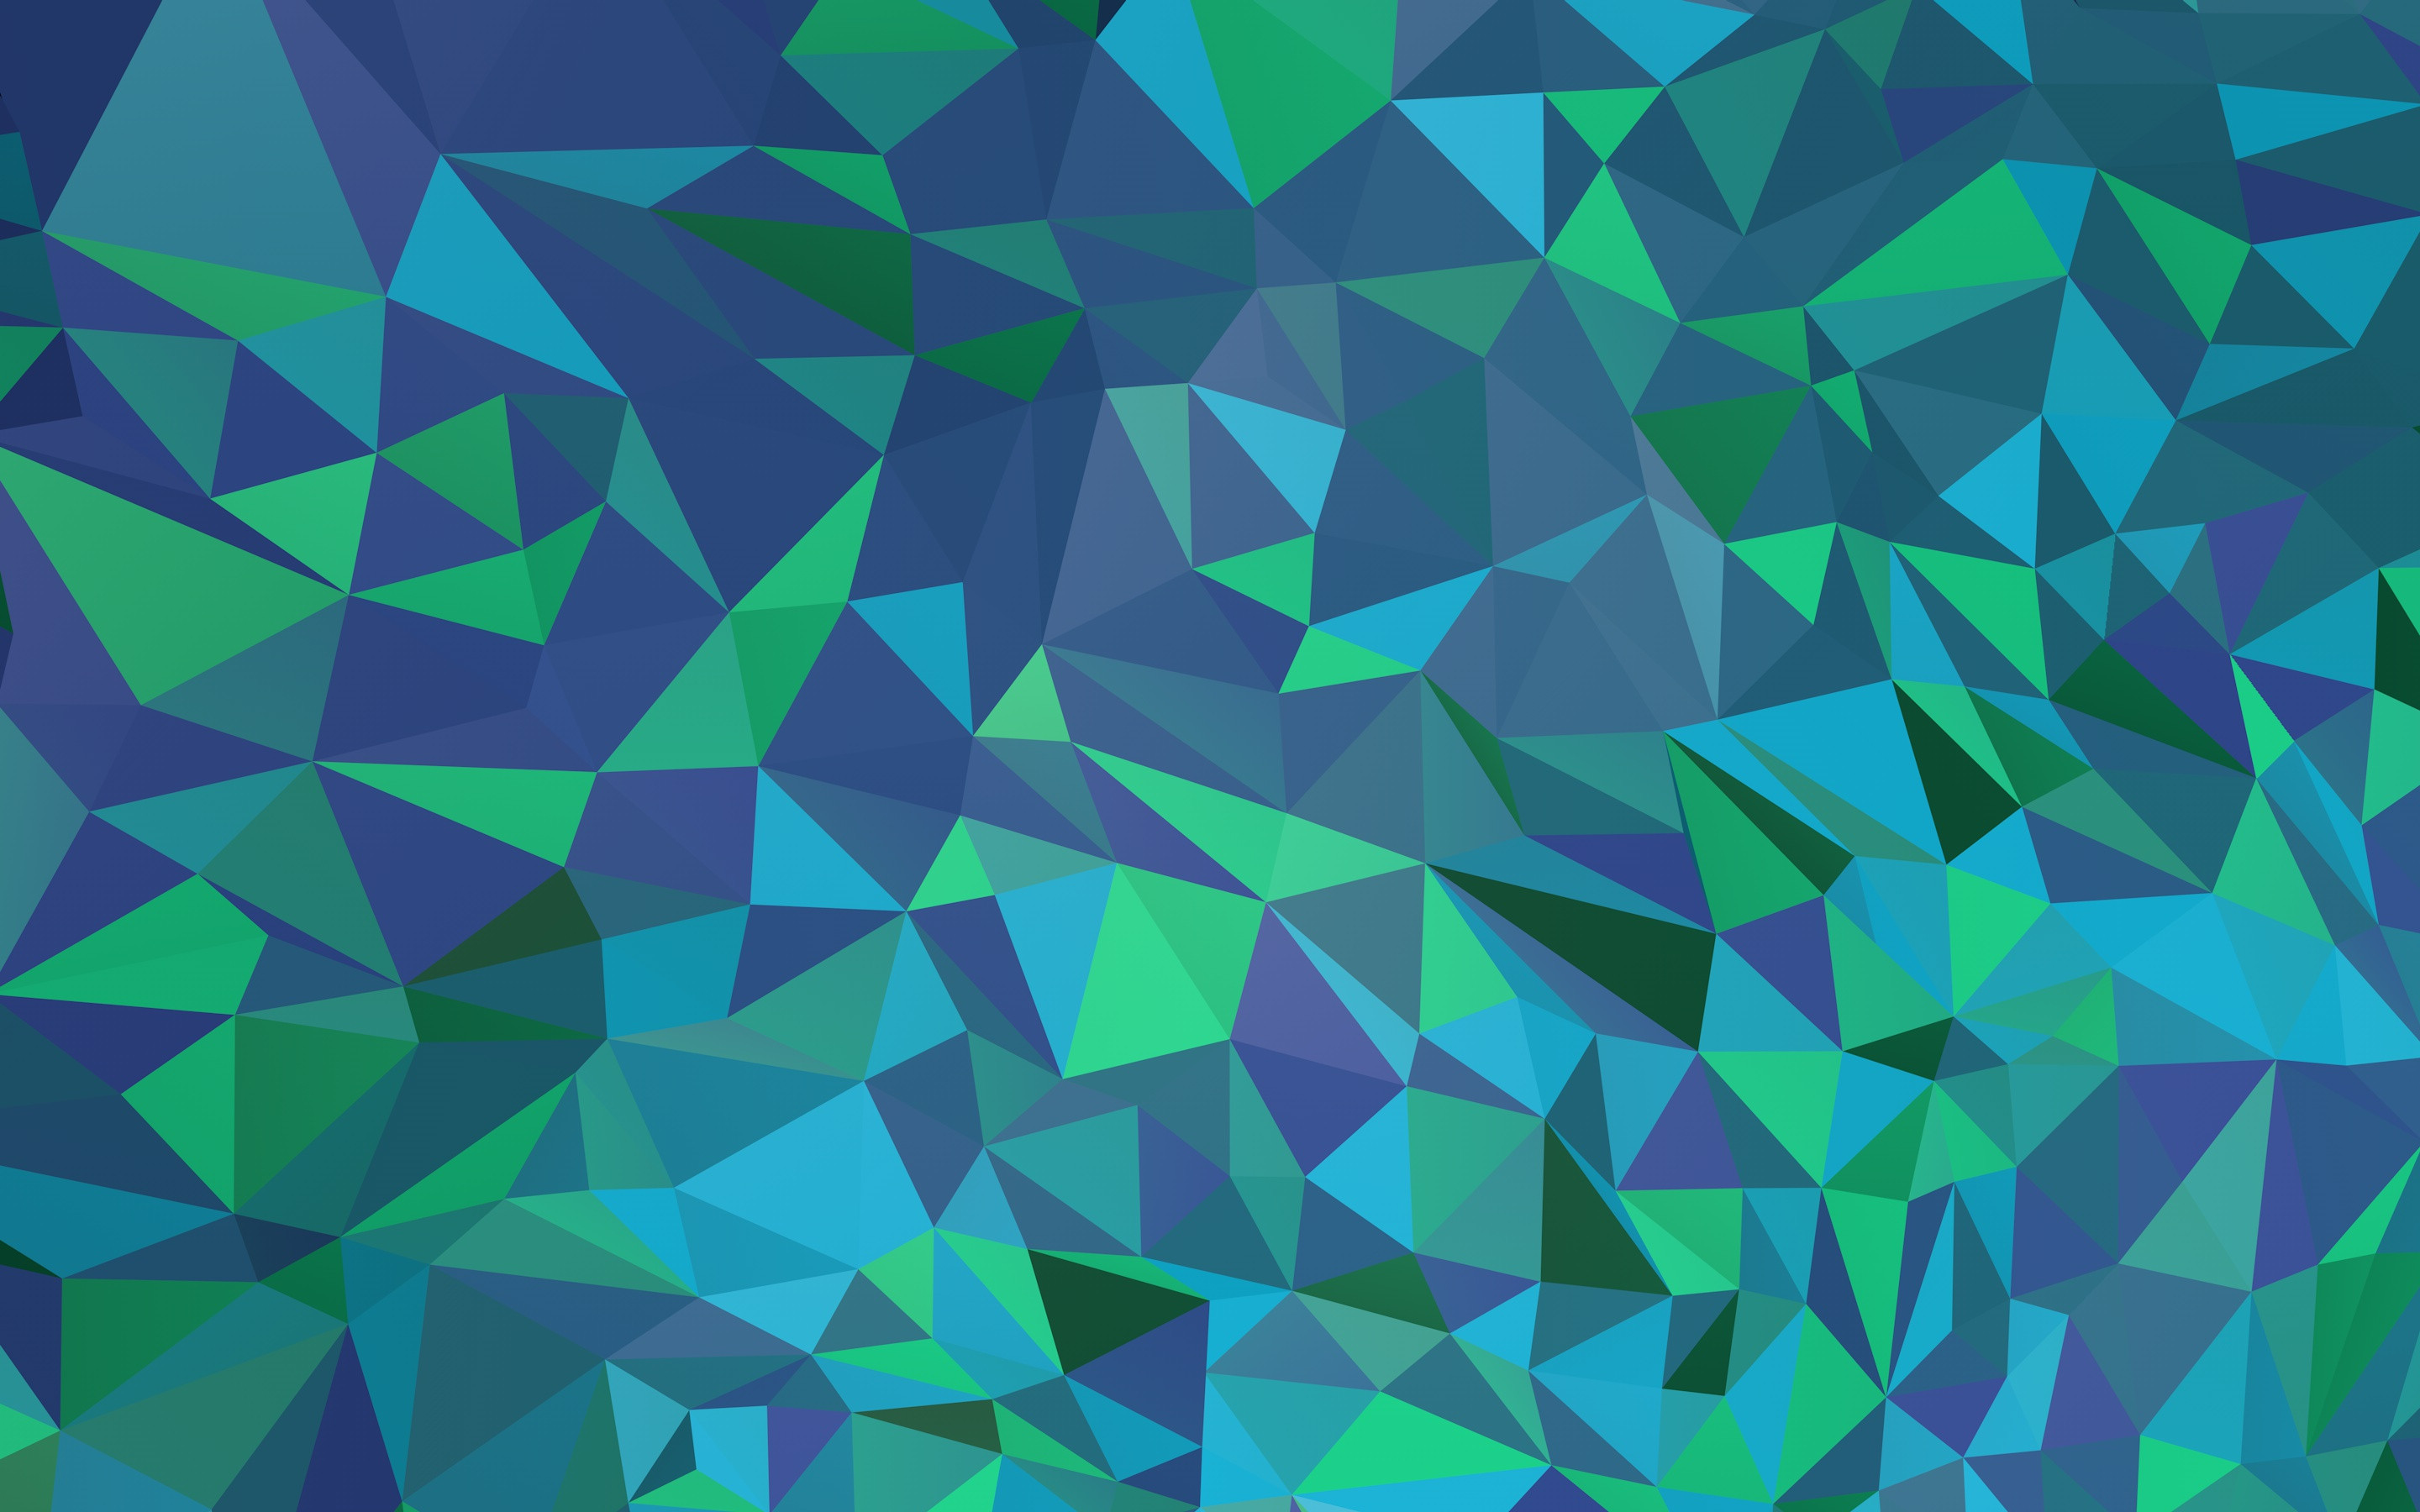 Res: 2880x1800, Low Poly Wallpaper 35938